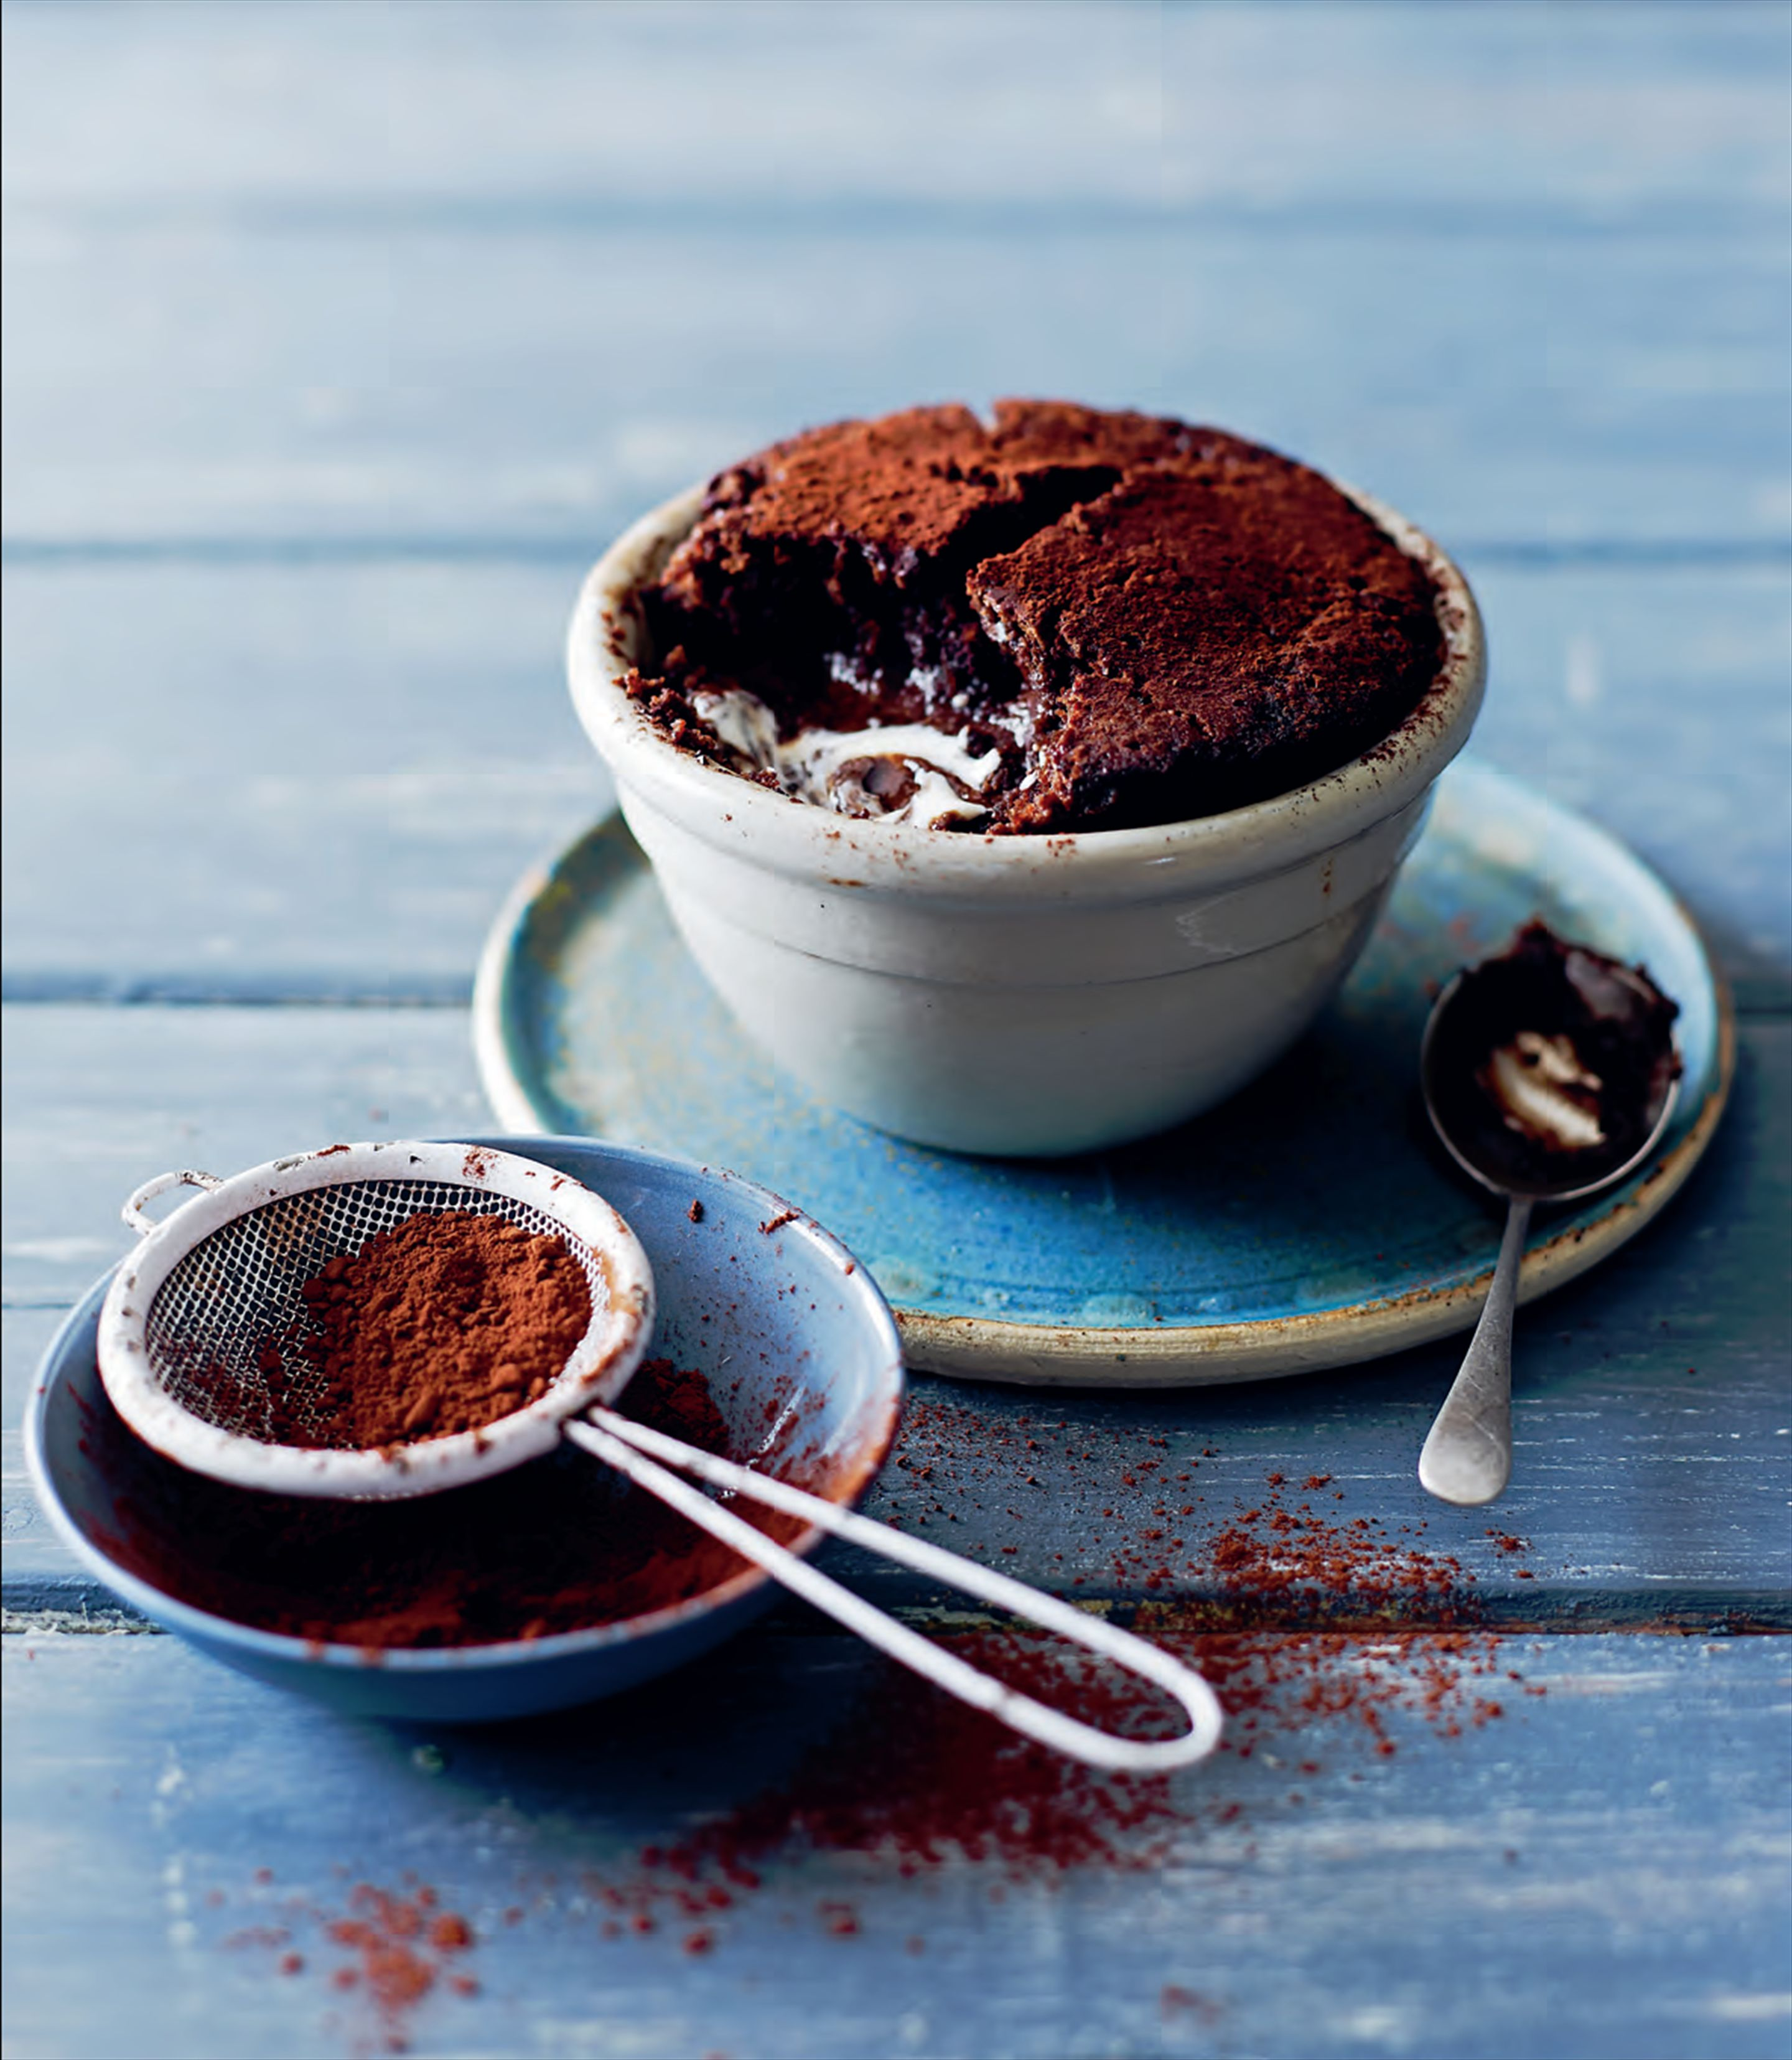 Chocolate stout puddings